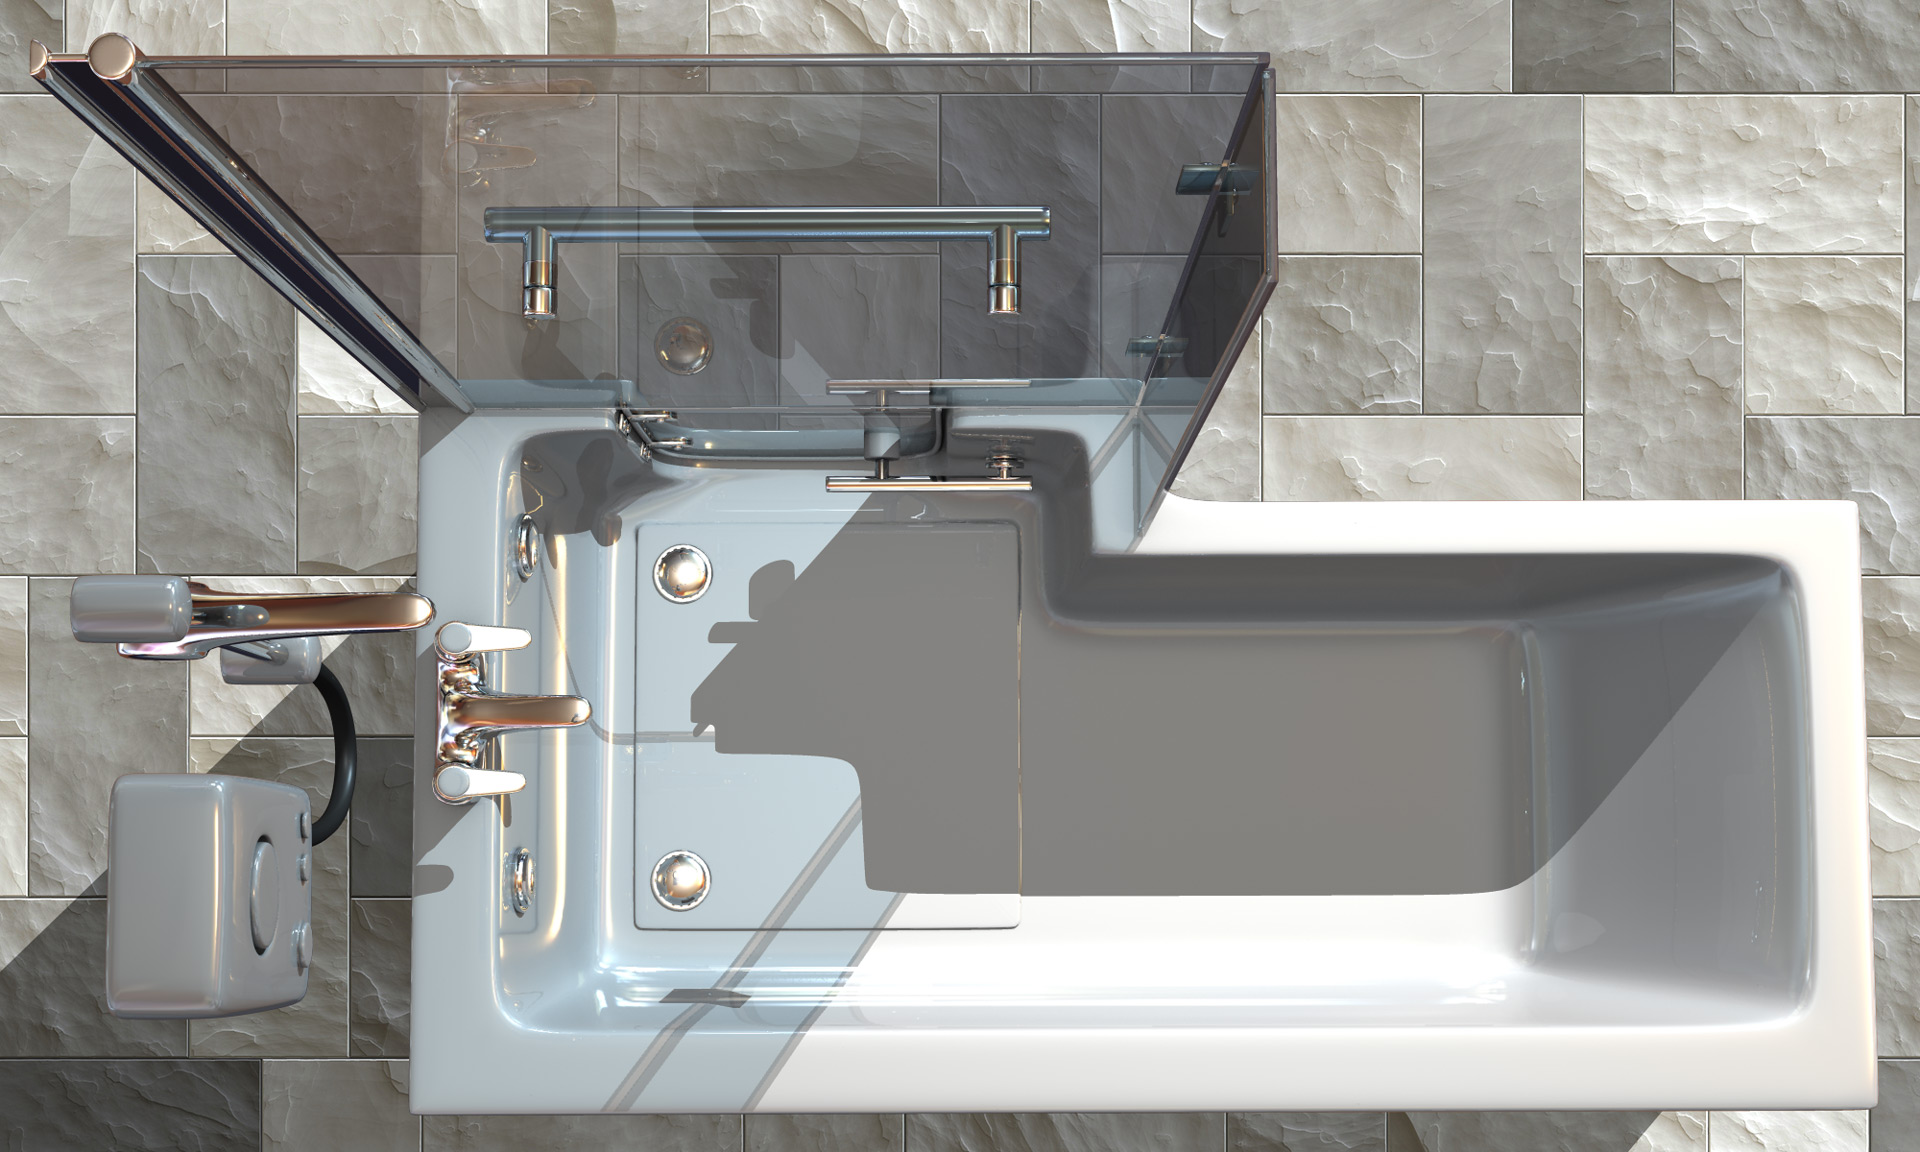 bathroom and fittings for care home and assisted living CGI image